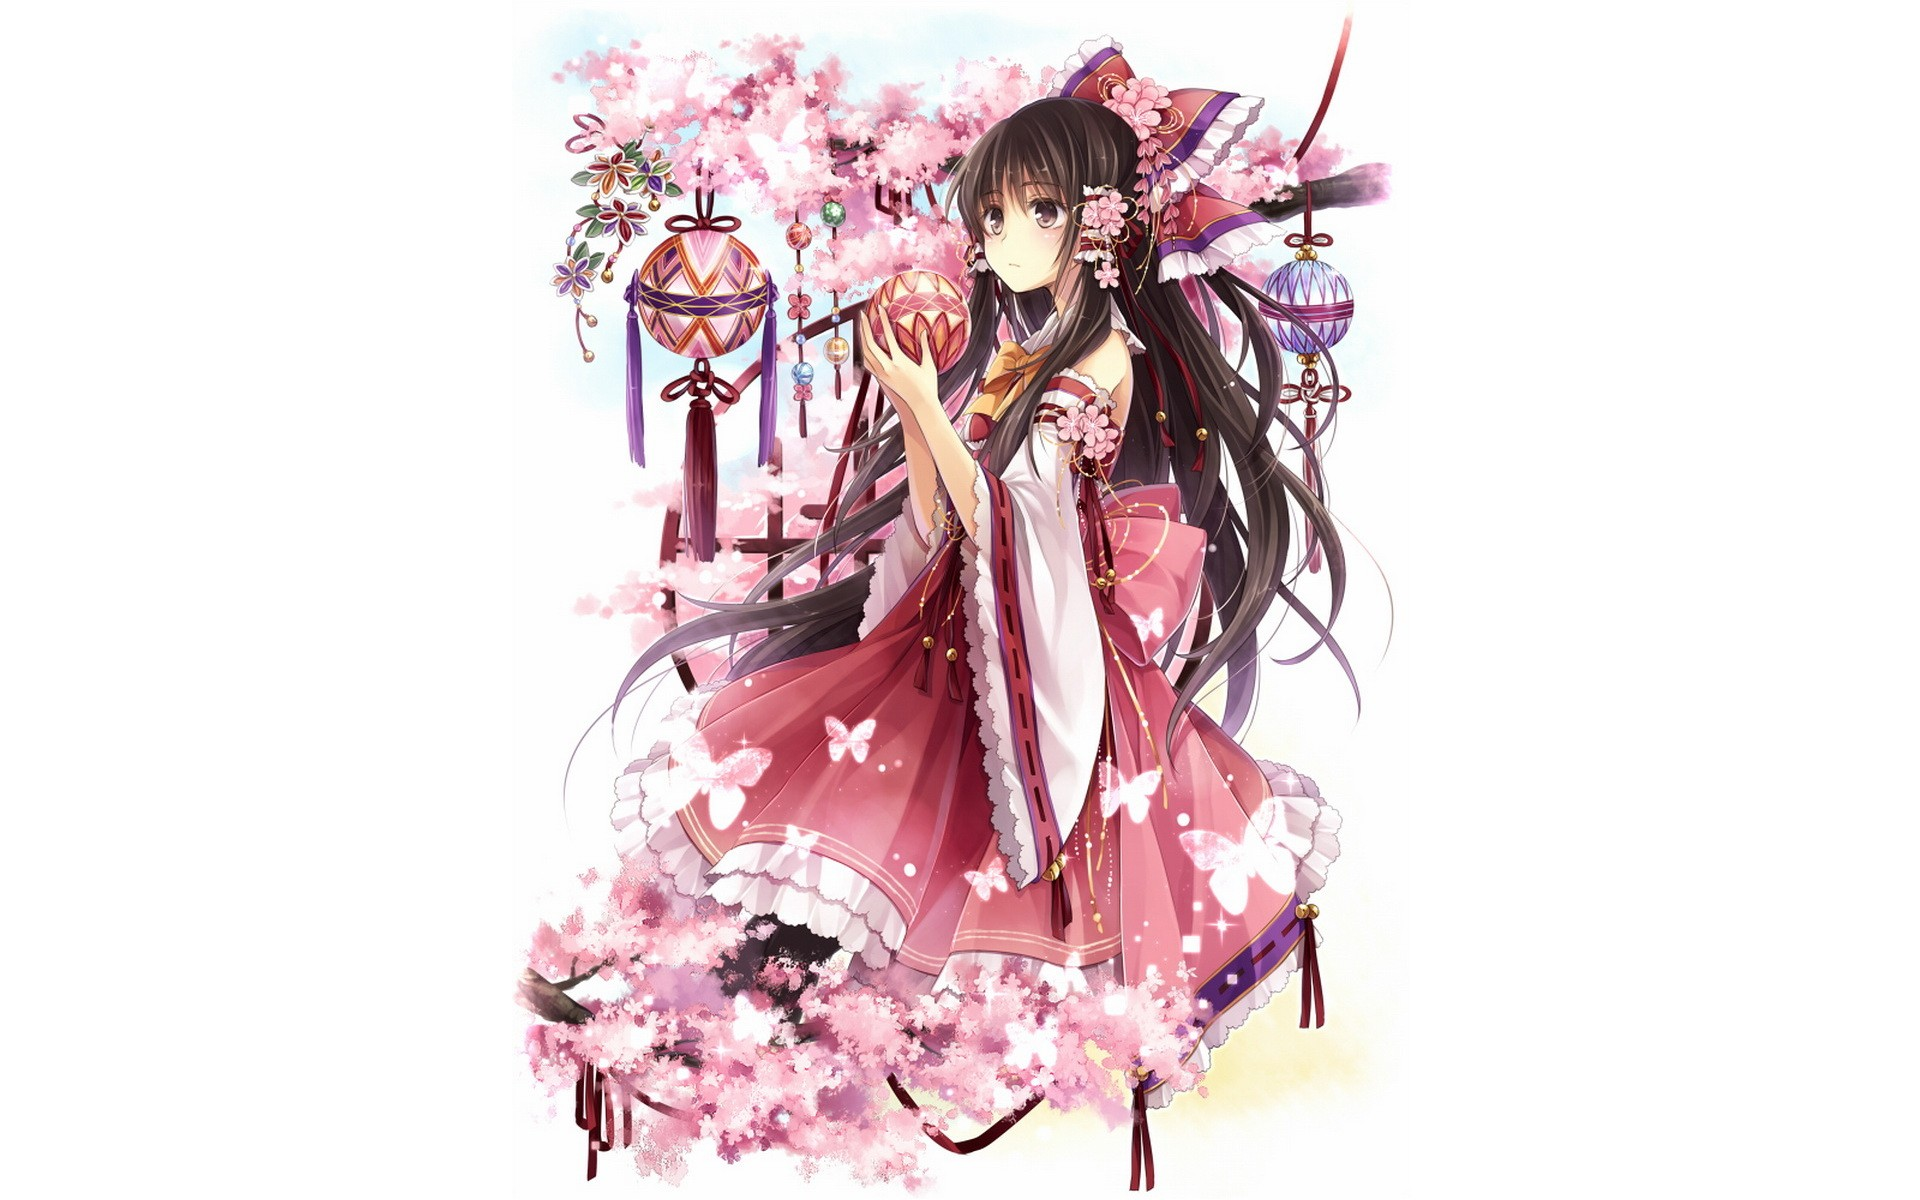 Porcupine necktie 151620710444791182 together with Casino Girl Anime Schoolgirl Street Wind moreover Bru tes video games Touhou cherry blossoms flowers long hair brown eyes Miko Hakurei Reimu bows red dress Japanese clothes simple background detached sleeves branches white background hair ornaments Hagiwara Rin butterflies as well 10776018 Haruhi's Cousin A Basketball Player Kuroko Love also 213998. on original characters anime japanese clothes cherry blossom